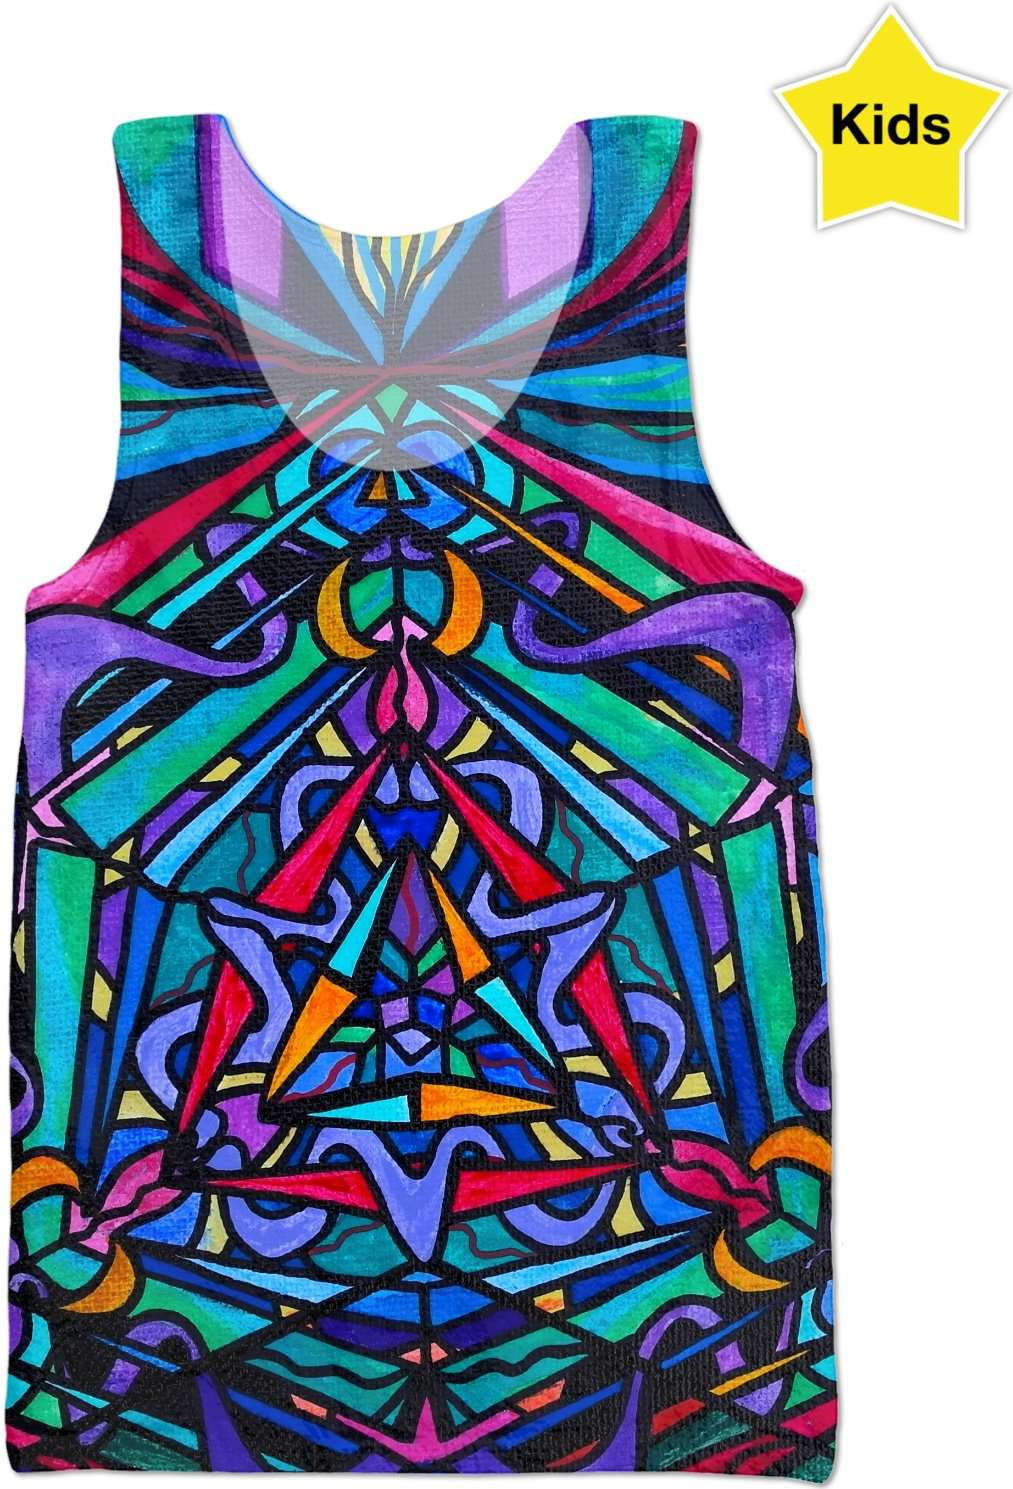 Coherence - Kids Tank Top